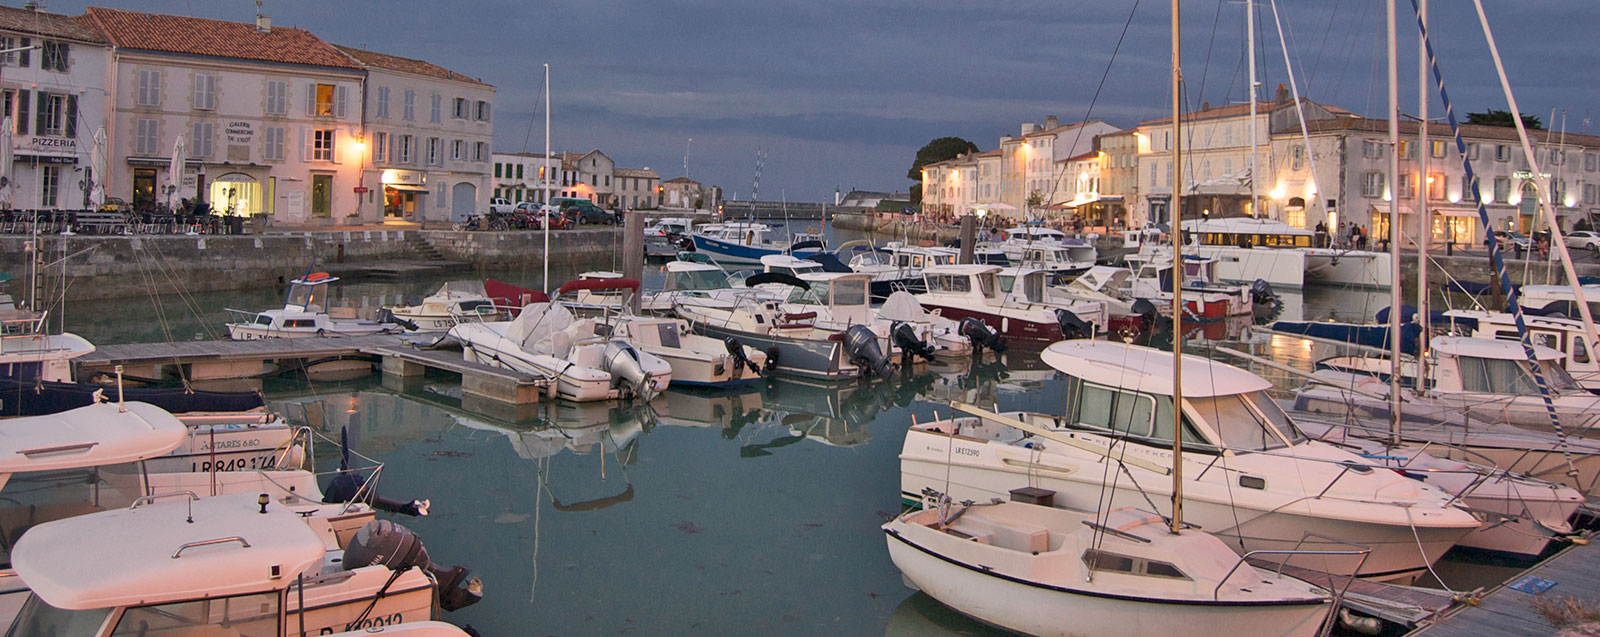 harbour-st-martin-de-re-3